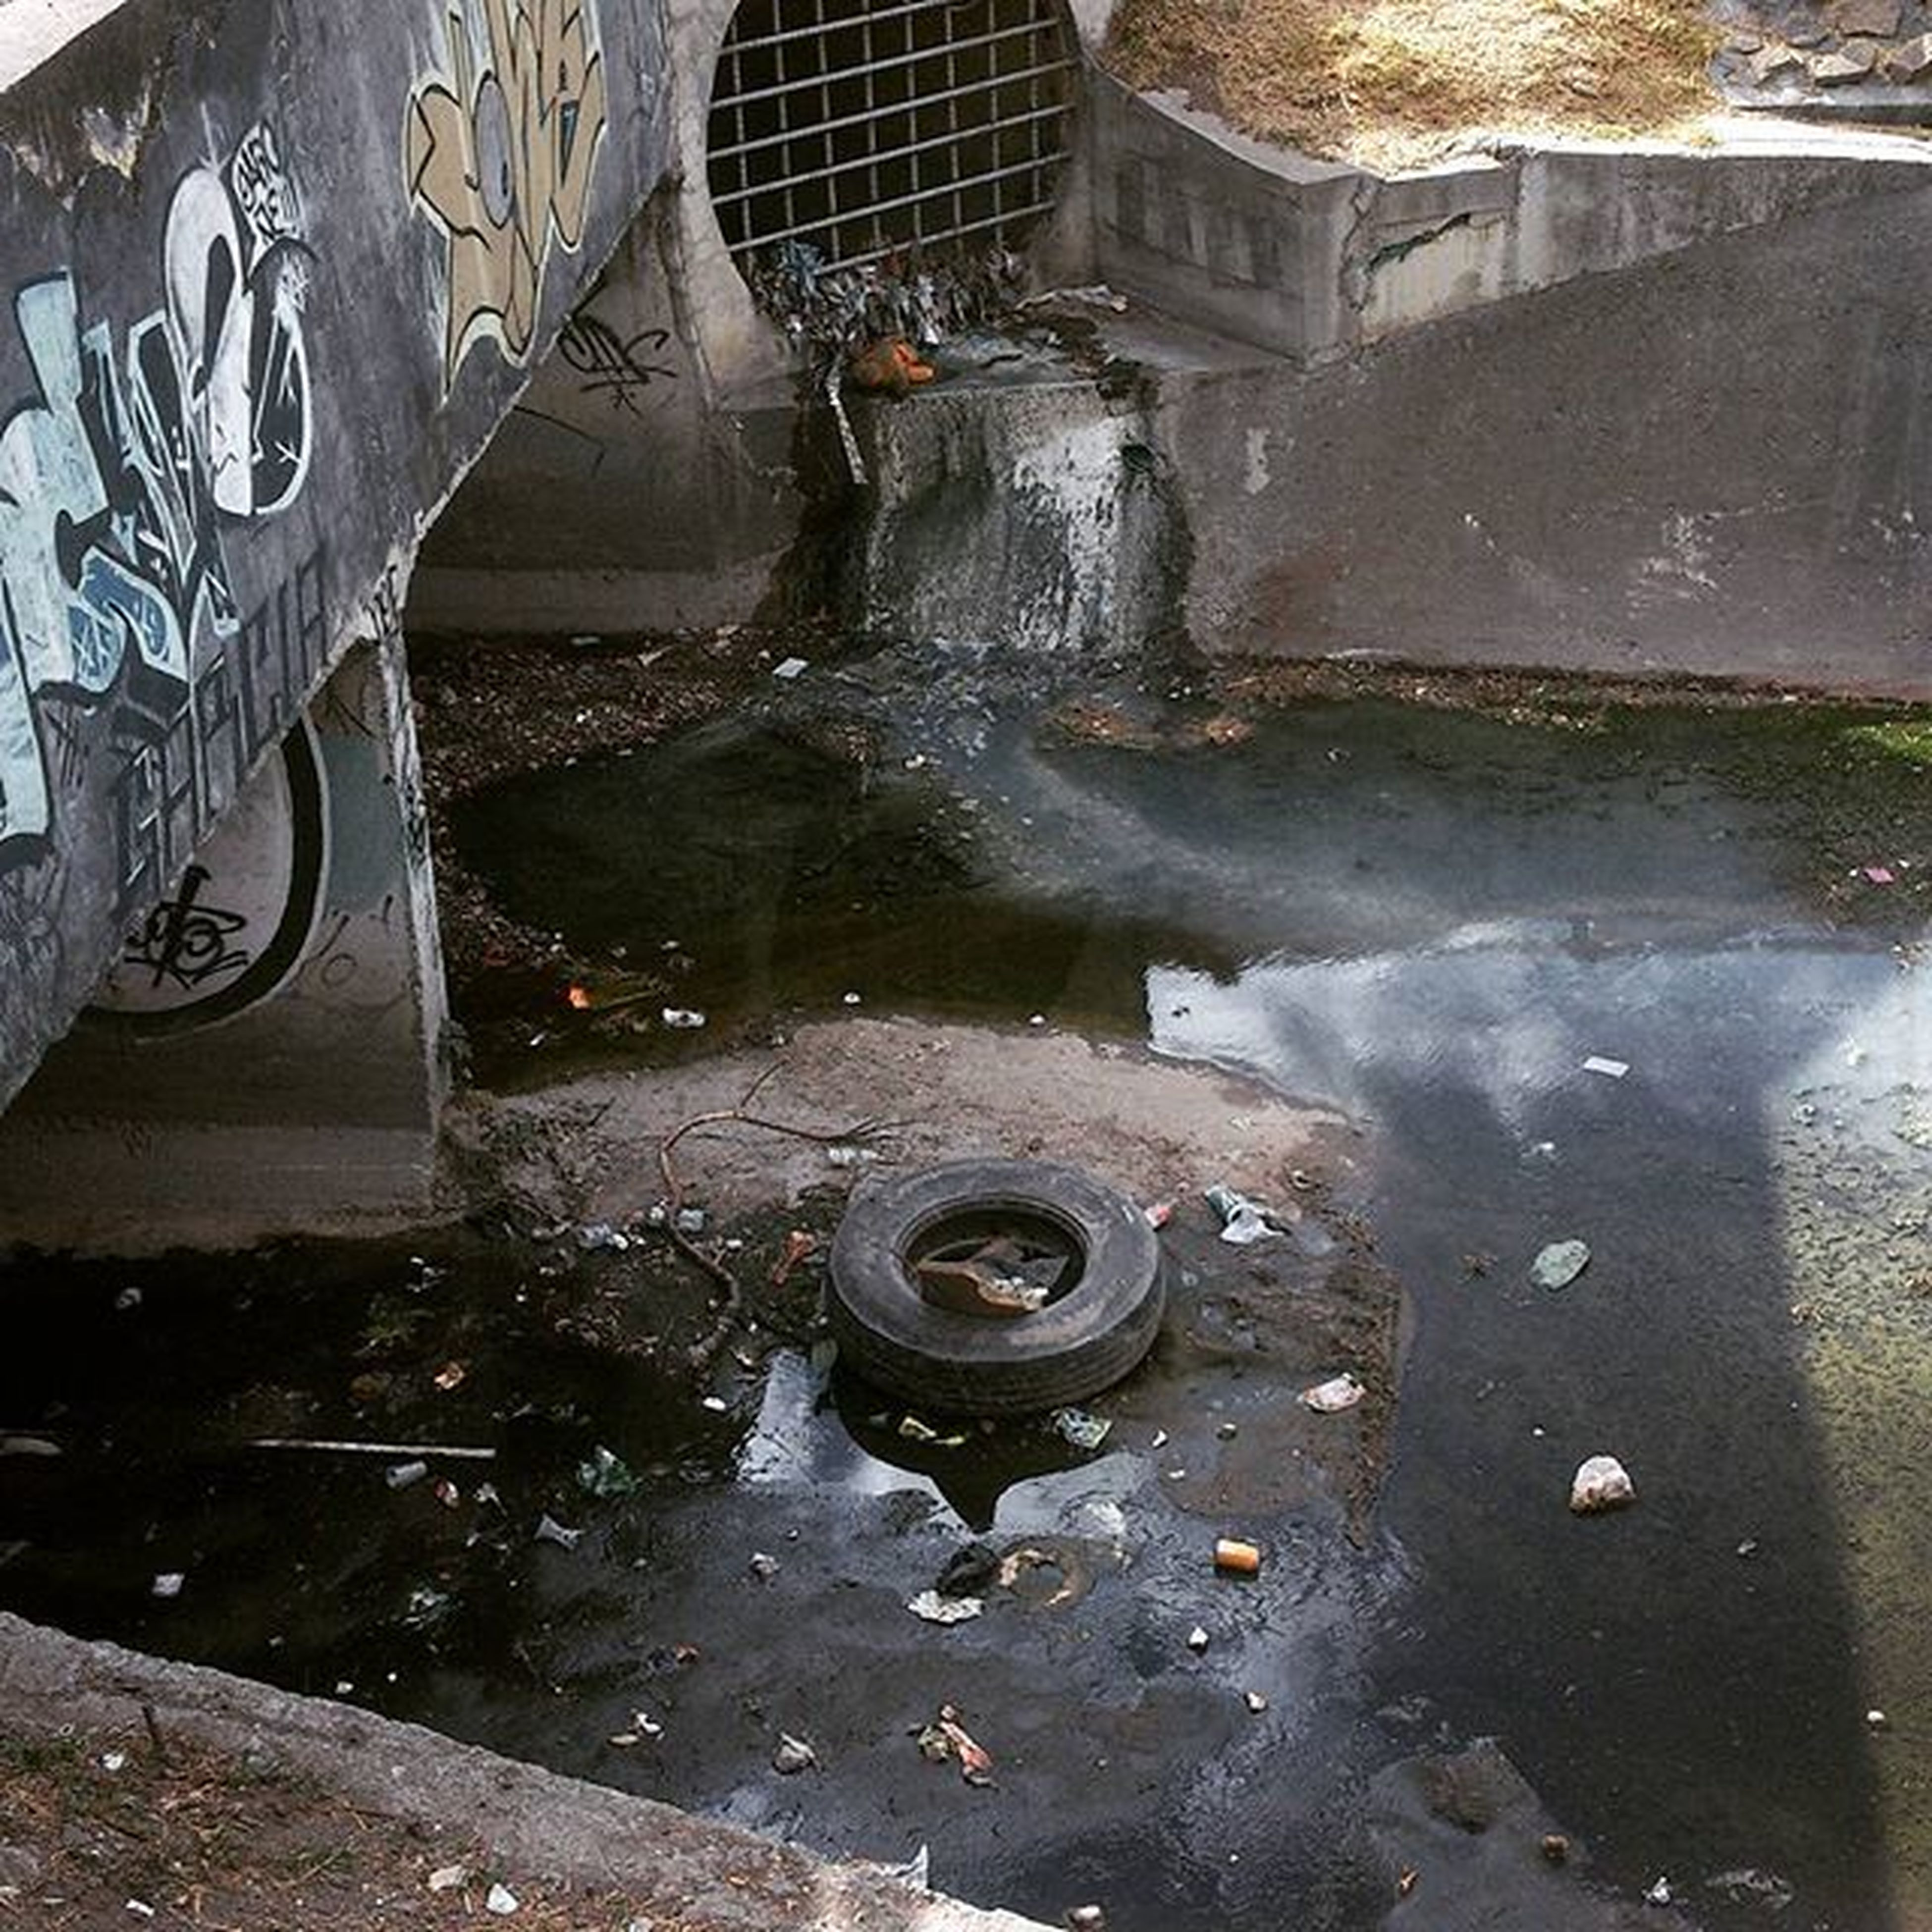 water, high angle view, abandoned, damaged, obsolete, puddle, reflection, built structure, messy, deterioration, wet, run-down, metal, architecture, day, outdoors, no people, old, dirty, transportation